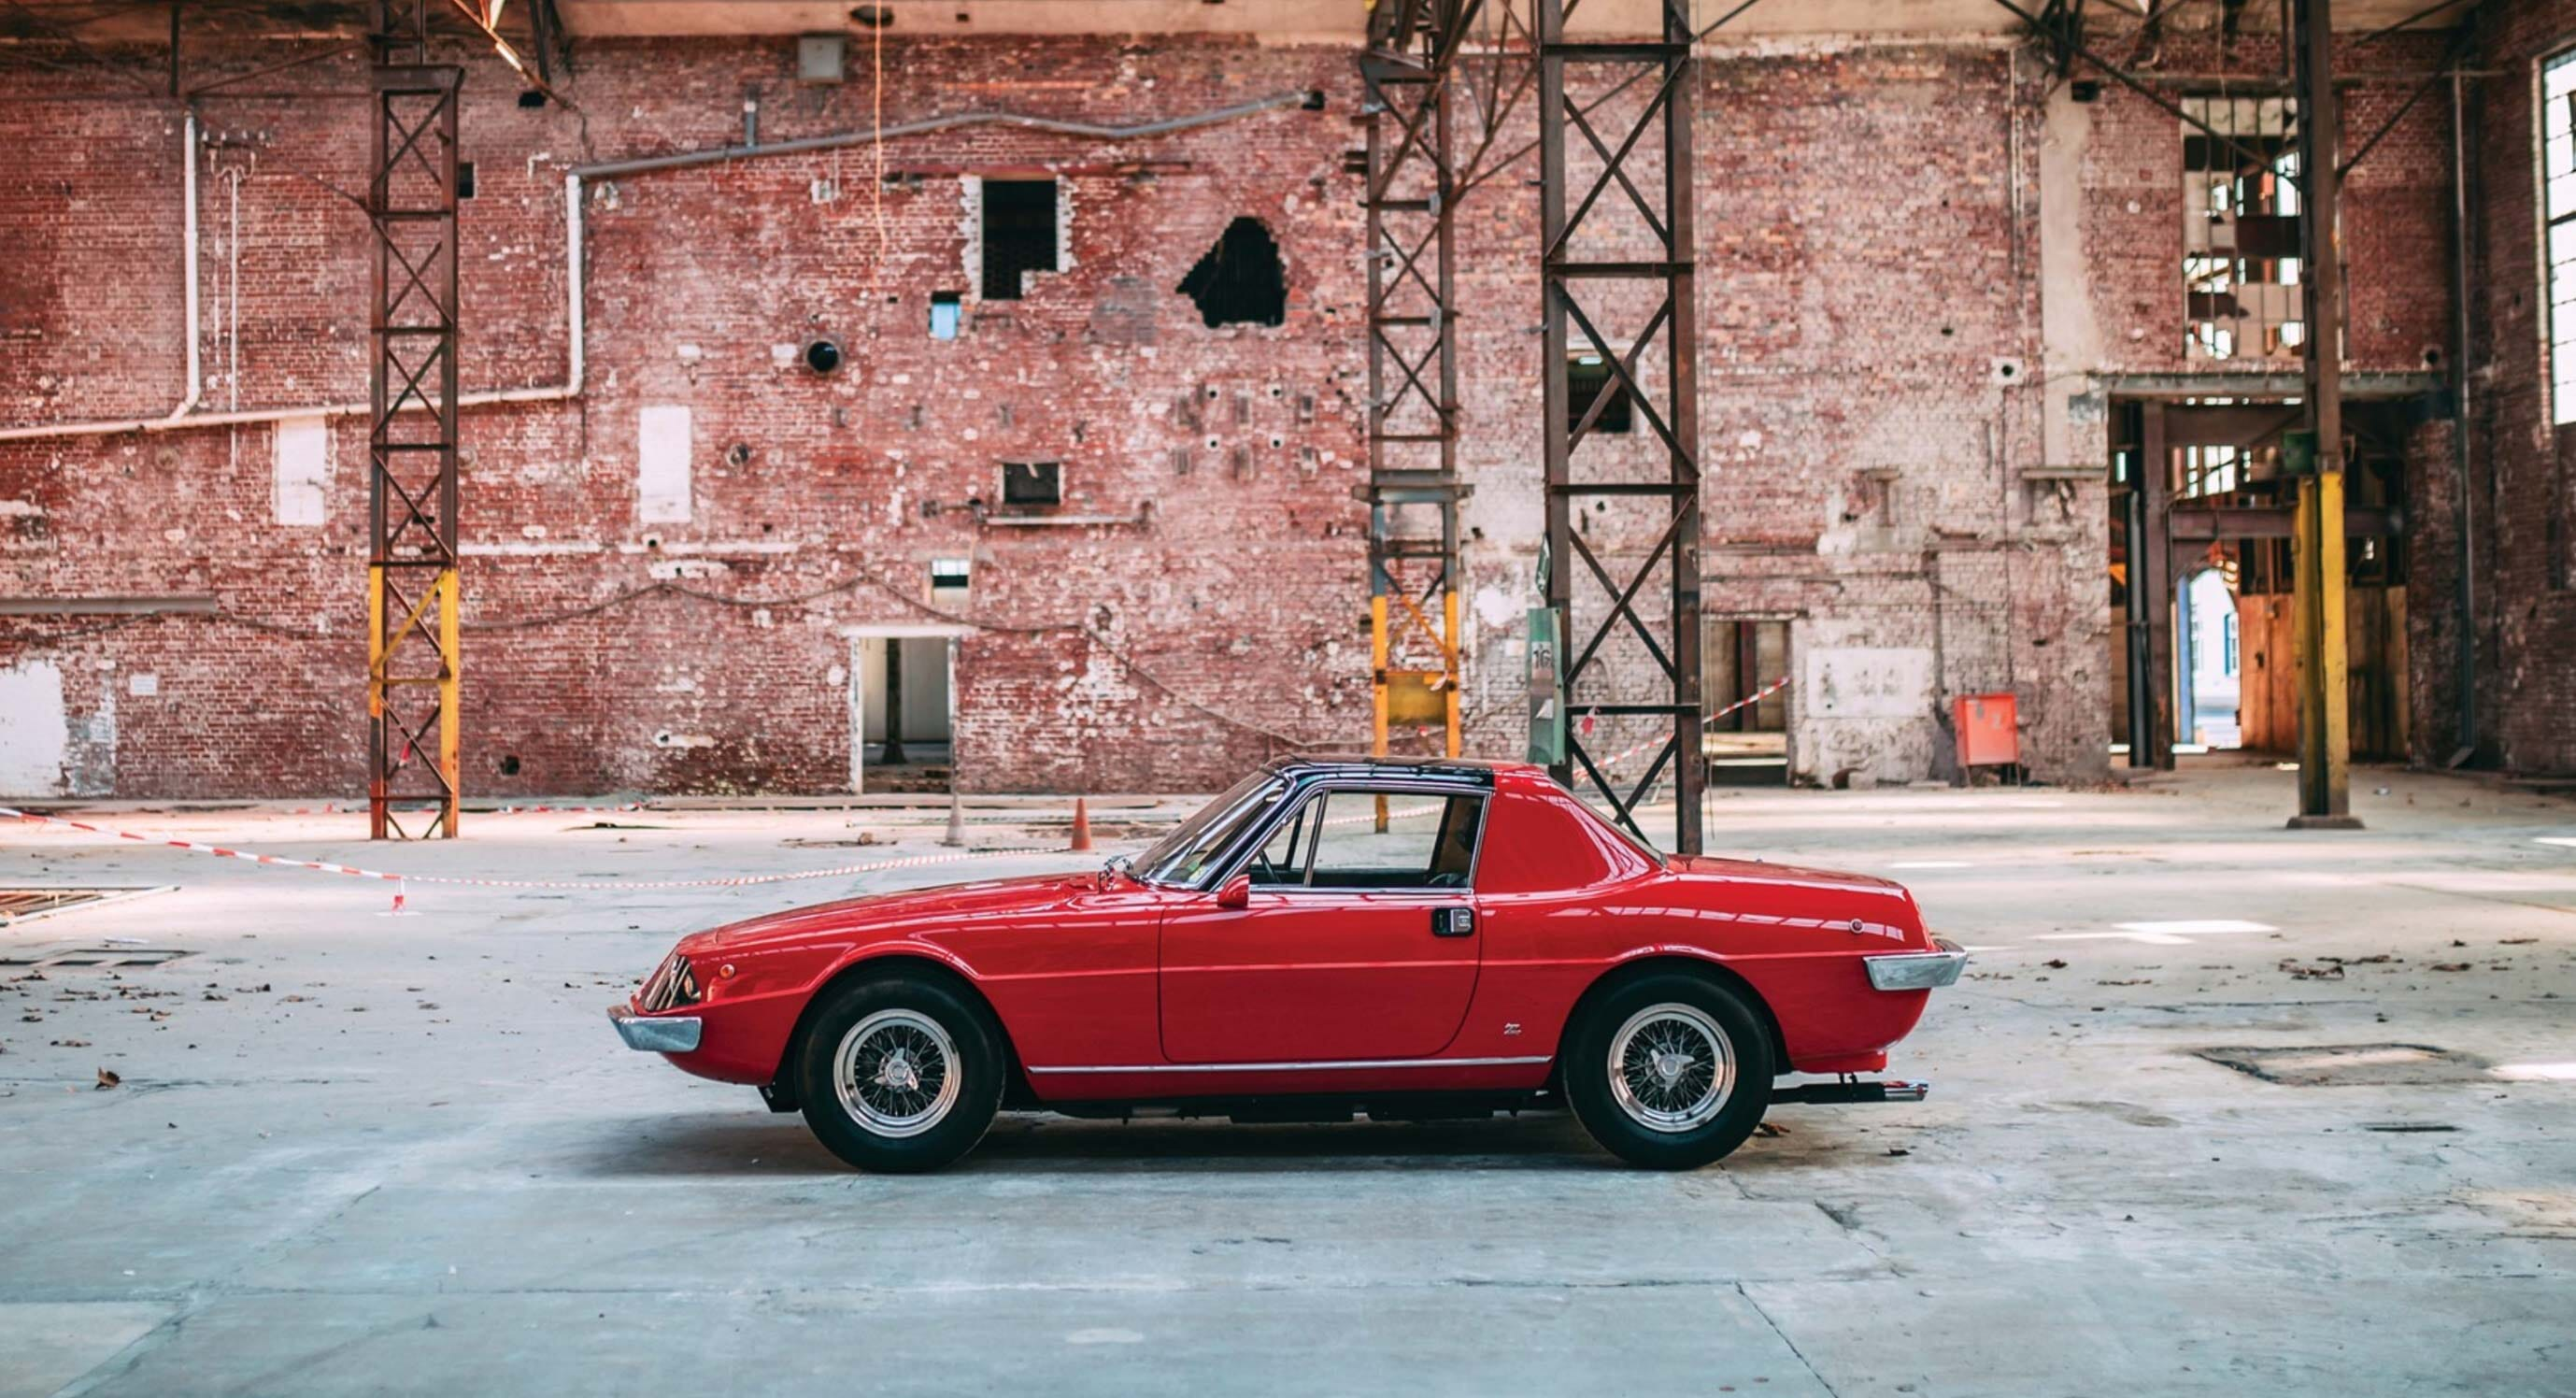 Classic Car Find of the Week: 1967 Ferrari 330 GTC Zagato